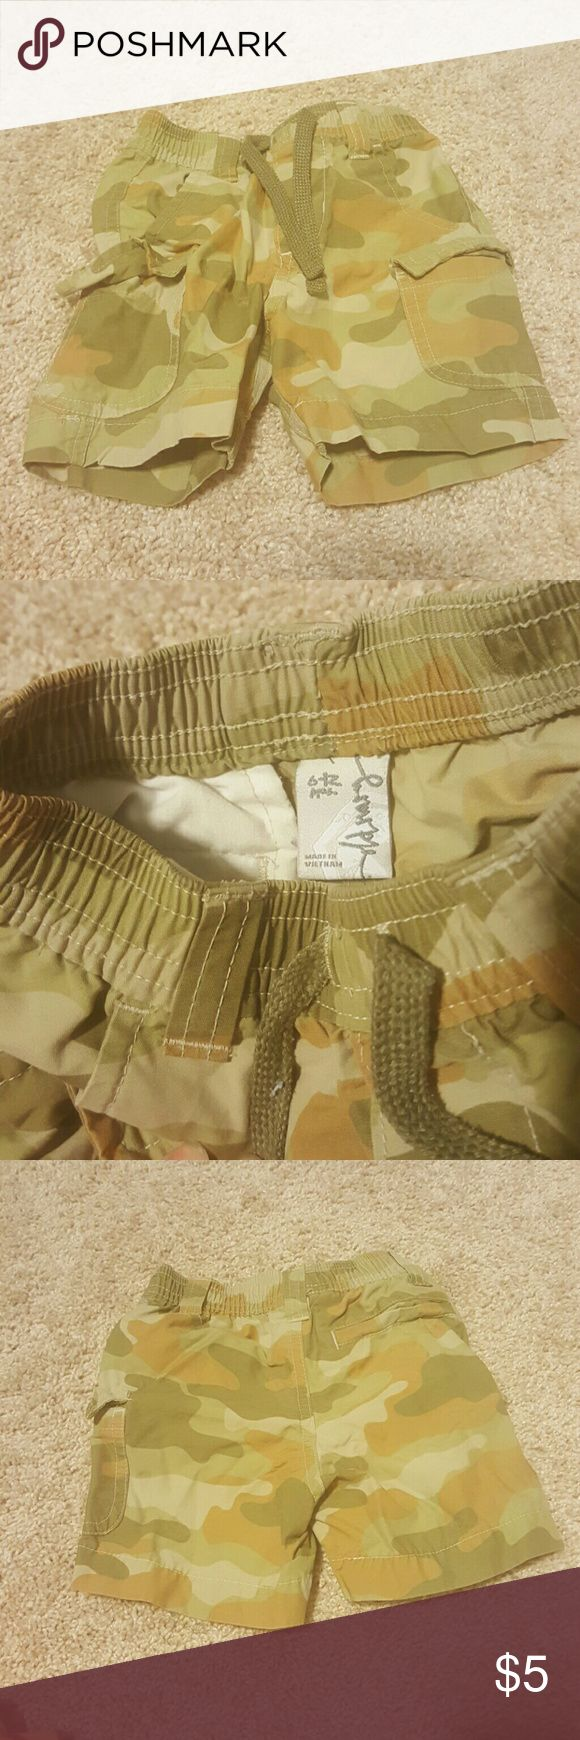 Old Navy Camouflage Shorts 6-12 months Old navy Camouflage shorts, stretch waist and drawstrings, 6 -12 months Old Navy Bottoms Shorts